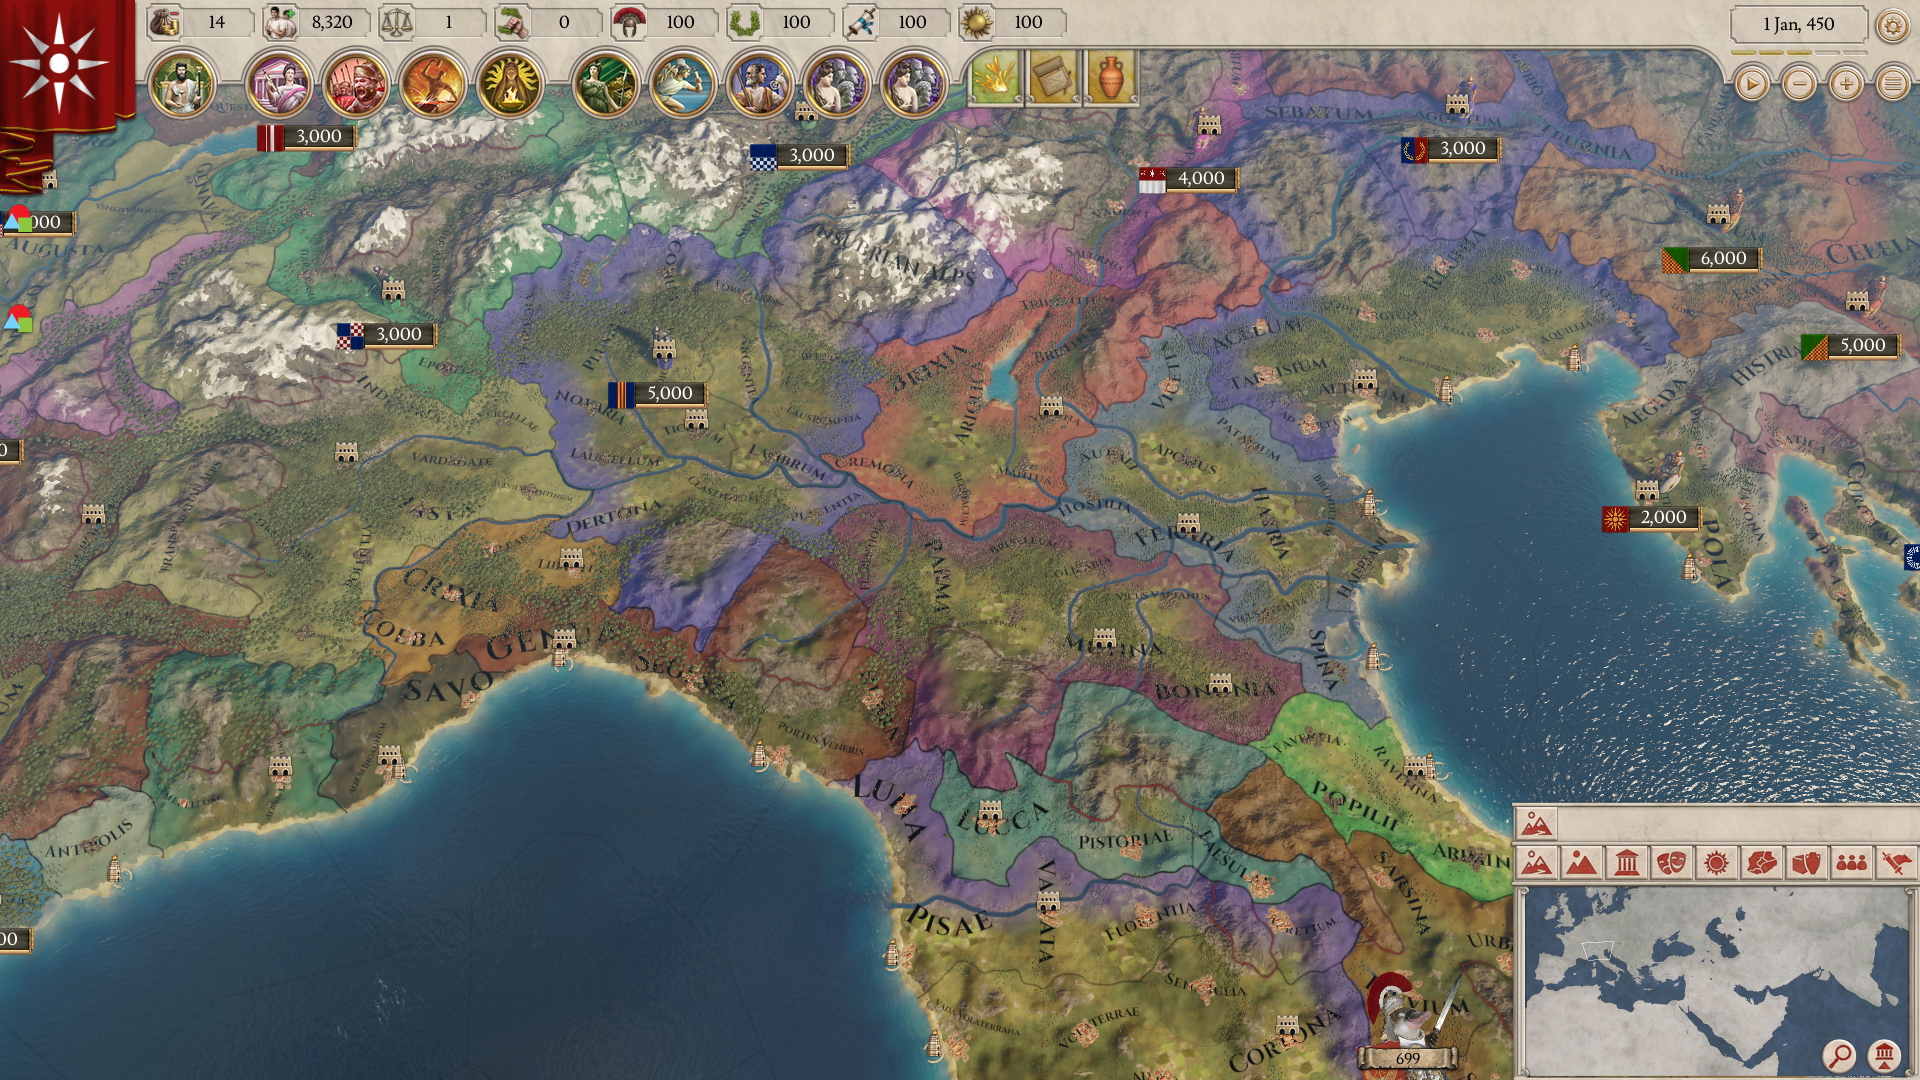 Map Of Italy With Mountains.The Map Aesthetics In Imperator Rome Seem To On A Whole New Level